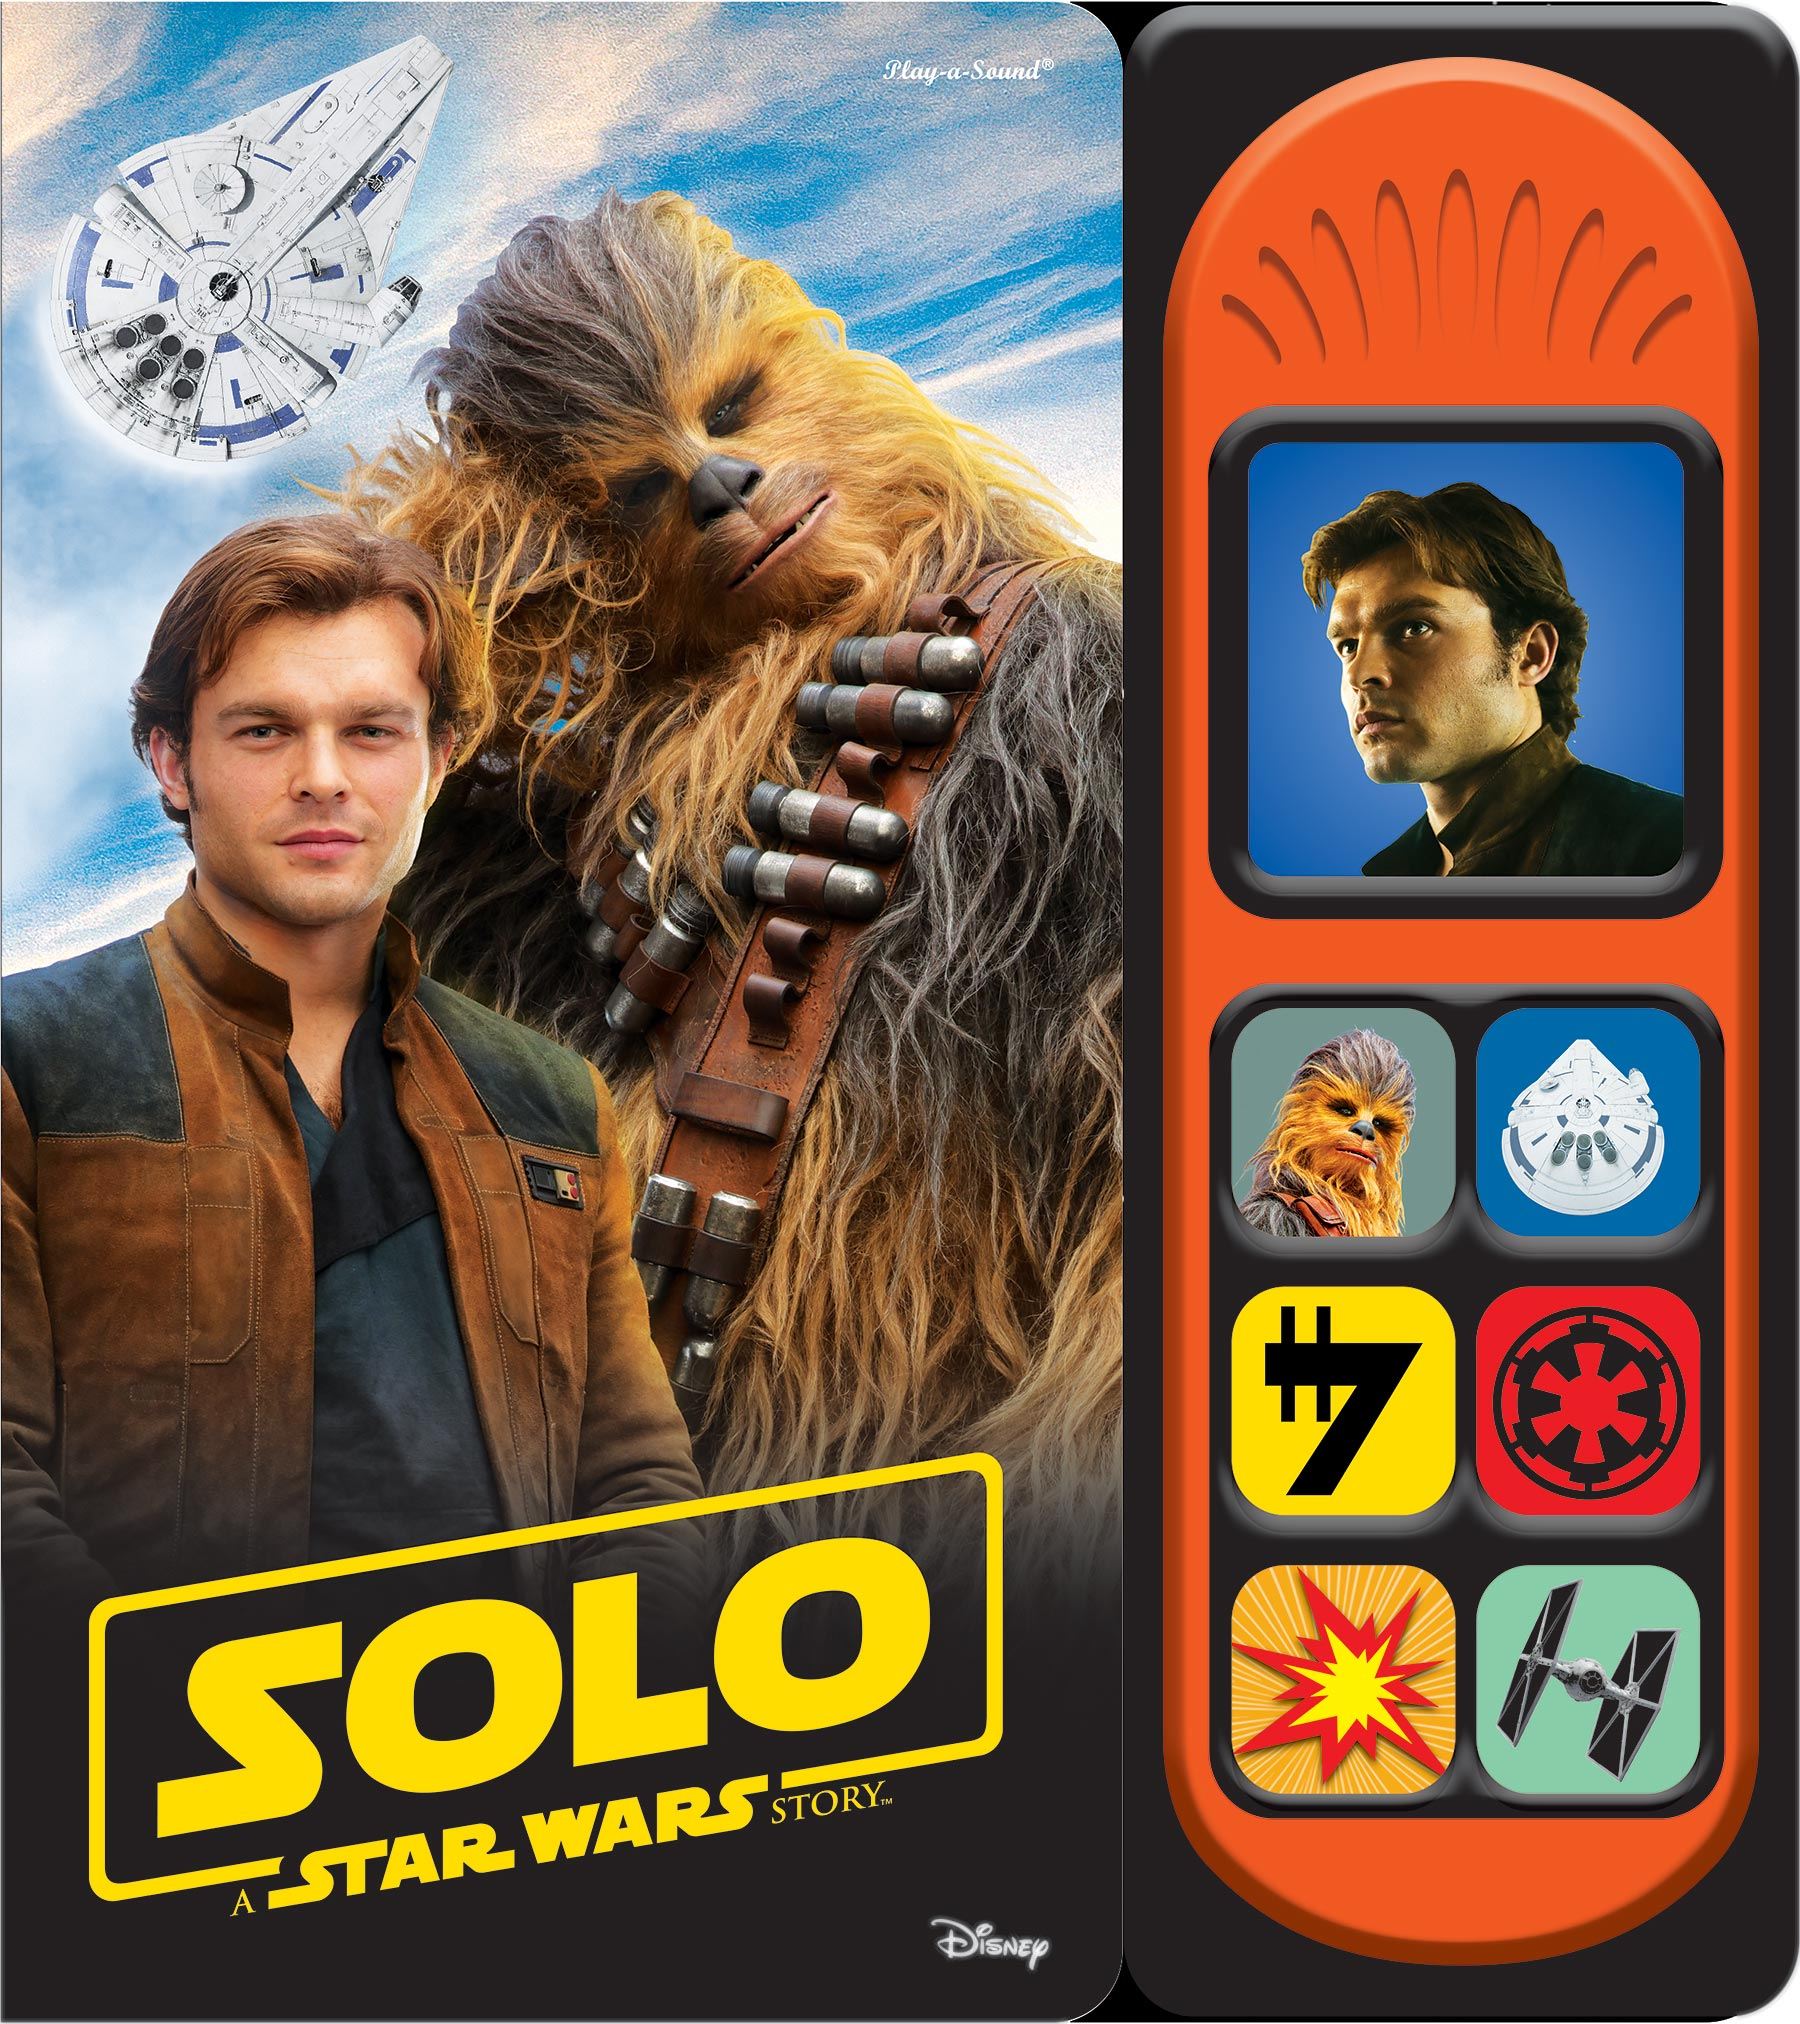 Hasbro Reveals New 'Solo: A Star Wars Story' Toys